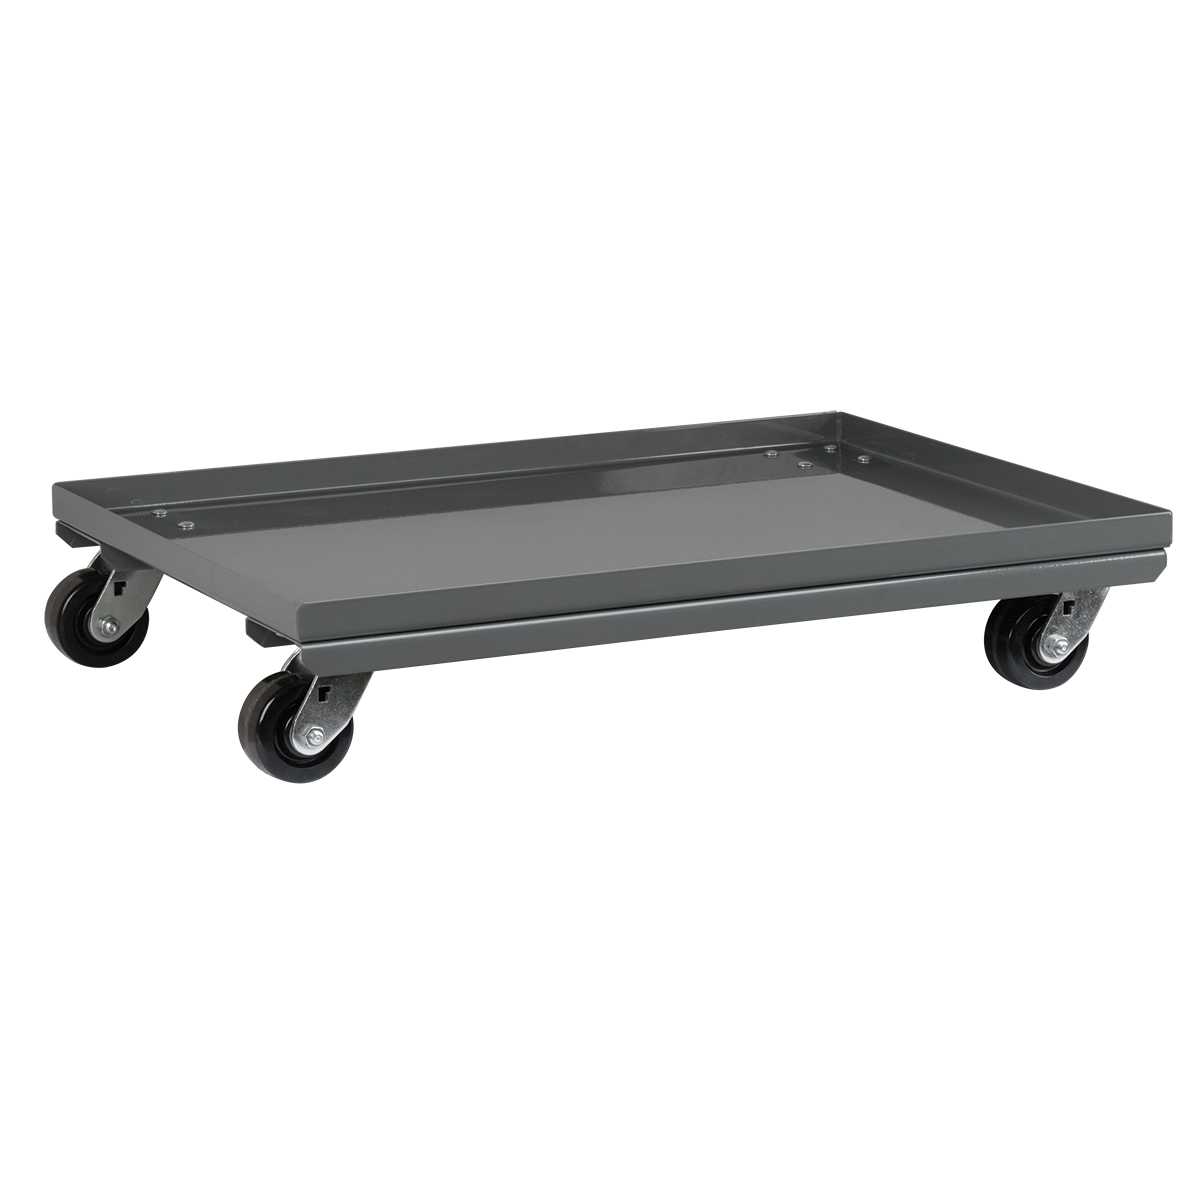 Mobile Kit for Rivet Floor Rack, 2-Sided, Gray (LVDMOBILE).  This item sold in carton quantities of 1.